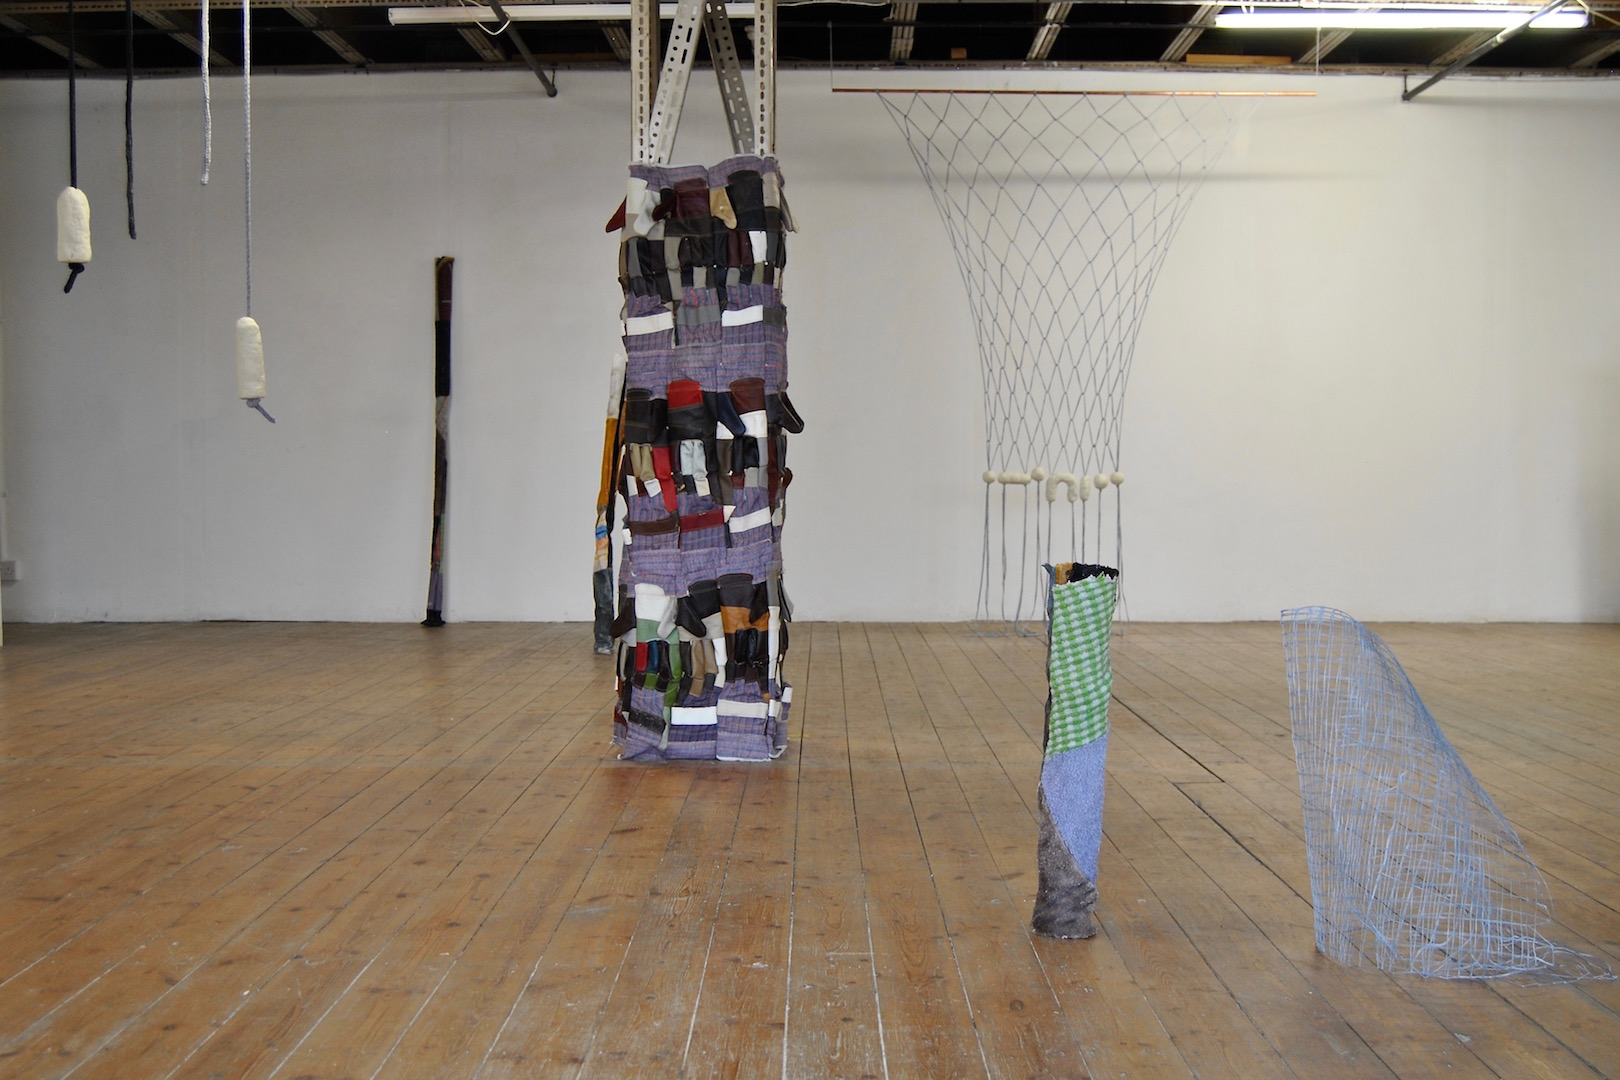 Installation view (L-R) - Soap On A Rope (LB); Soap Tube No.2 & No.4 (SG); Rigger Gloves (SG); Untitled (LB); Rag Tube No.3 (SG); Grid (LB)